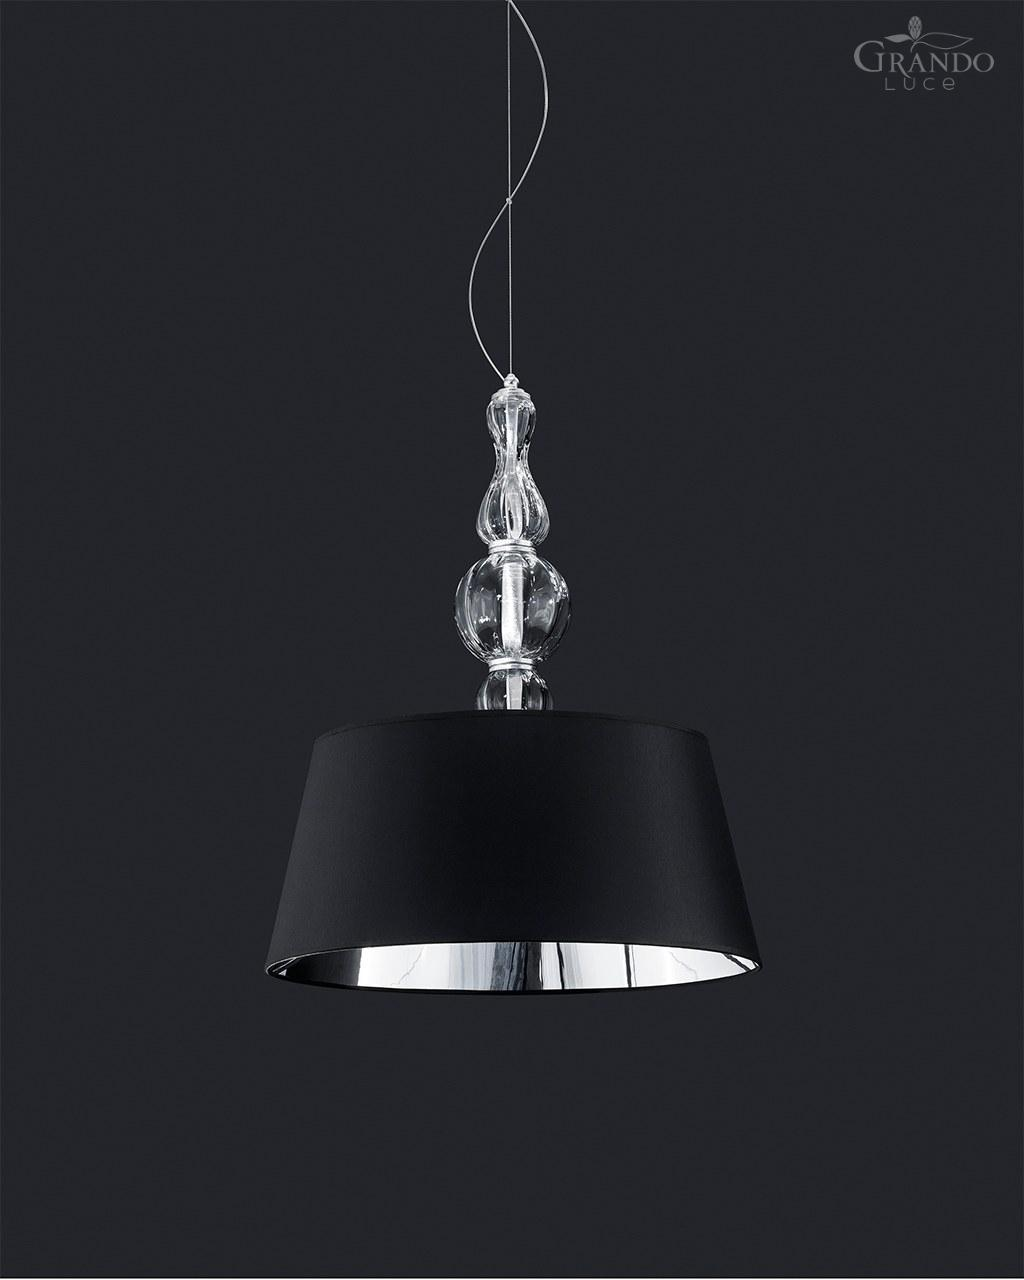 Combination modern pendant light fixtures Shade Modern Pendant Light With Six Lamps Combined Harmony With Pvc Black Chrome Lampshade The Metal Finish Is In Silver Leaf Made Entirely With Handmade Grandoluce 118sg Silver Leaf Modern Pendant Light With Swarovski Elements